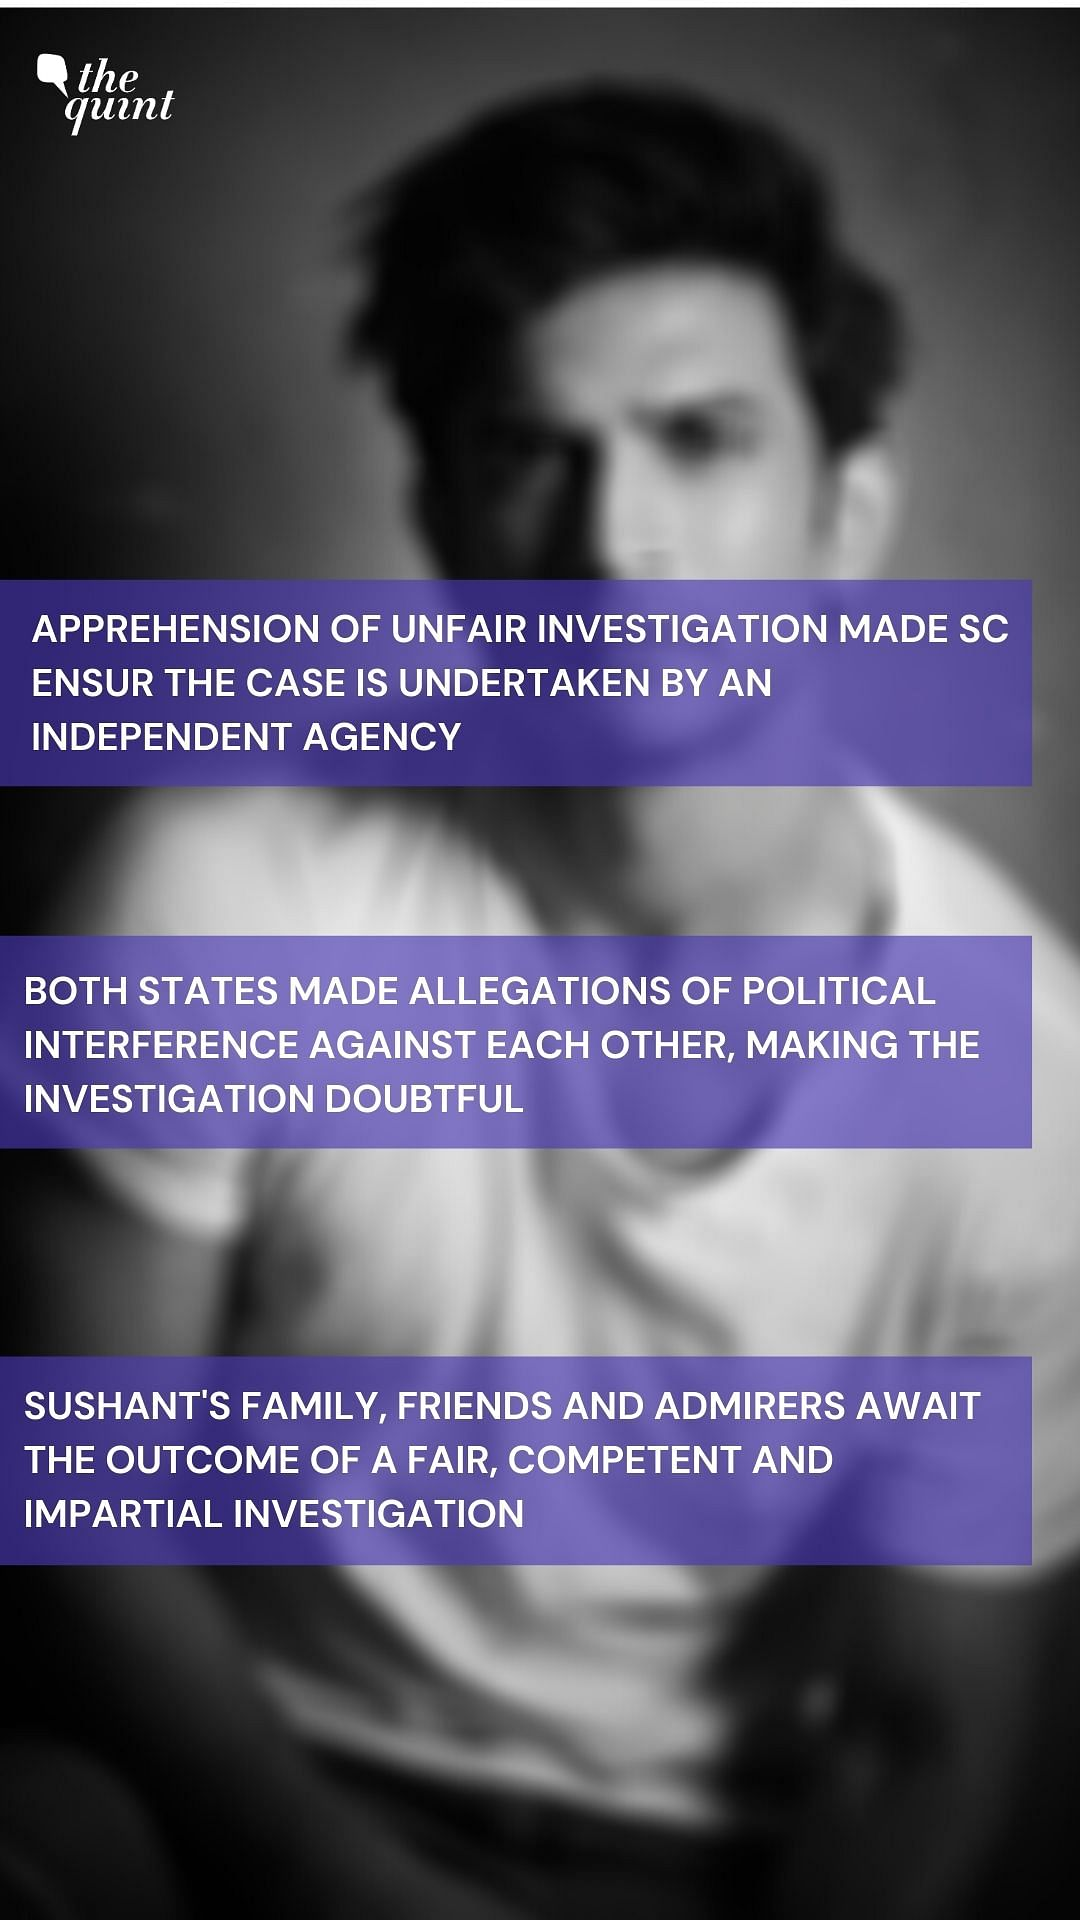 Key highlights from the Supreme Court Order in Sushant Singh Rajput Case.